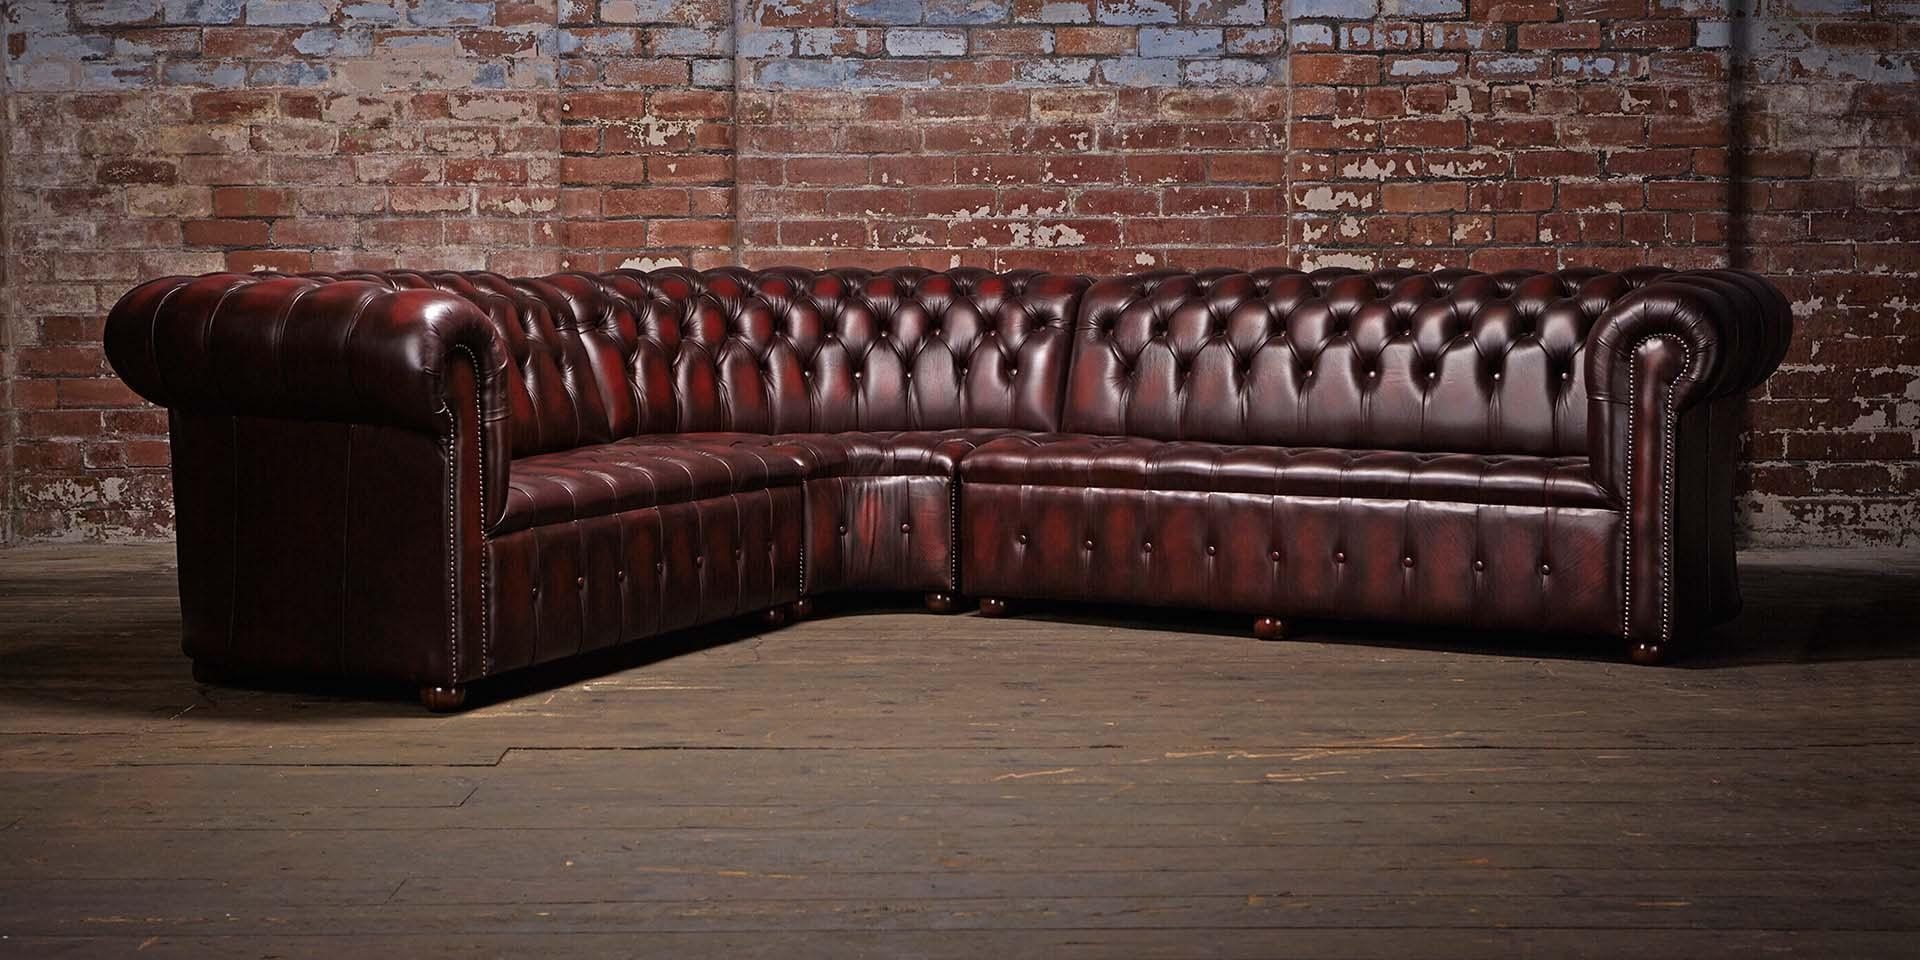 Red Leather Chesterfield Sofa | Sofa Gallery | Kengire Inside Red Leather Chesterfield Sofas (View 6 of 20)